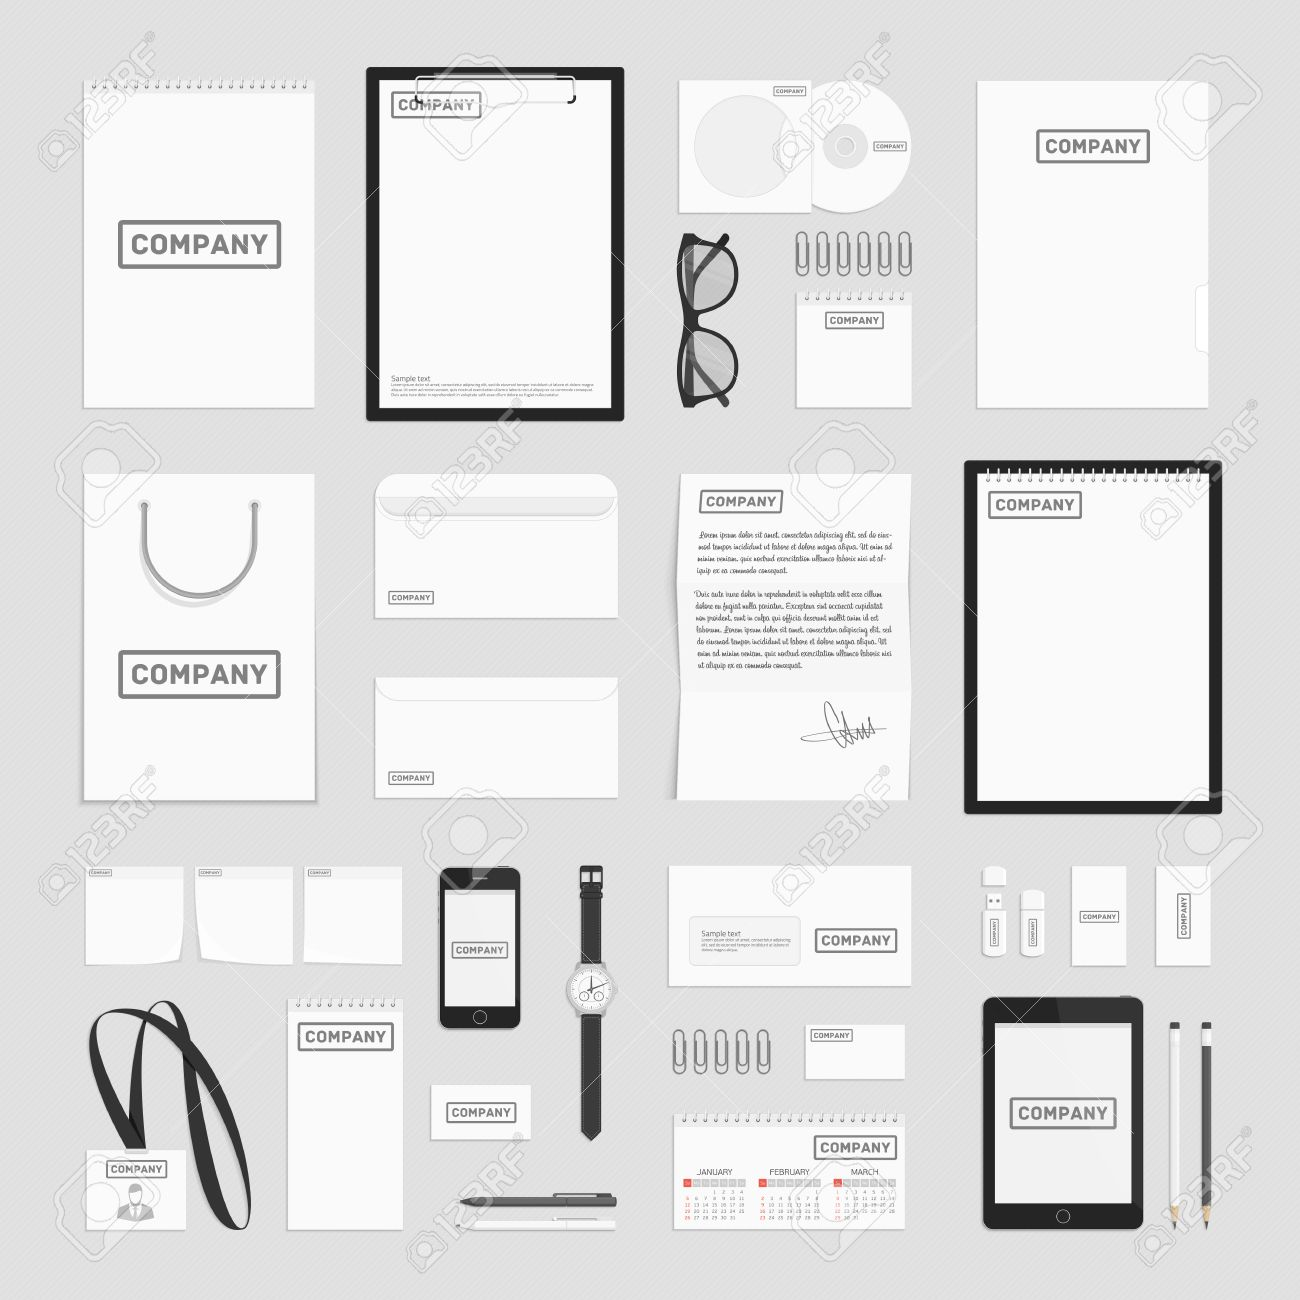 Blank corporate identity template set documentation for business blank corporate identity template set documentation for business vector modern company style for spiritdancerdesigns Choice Image